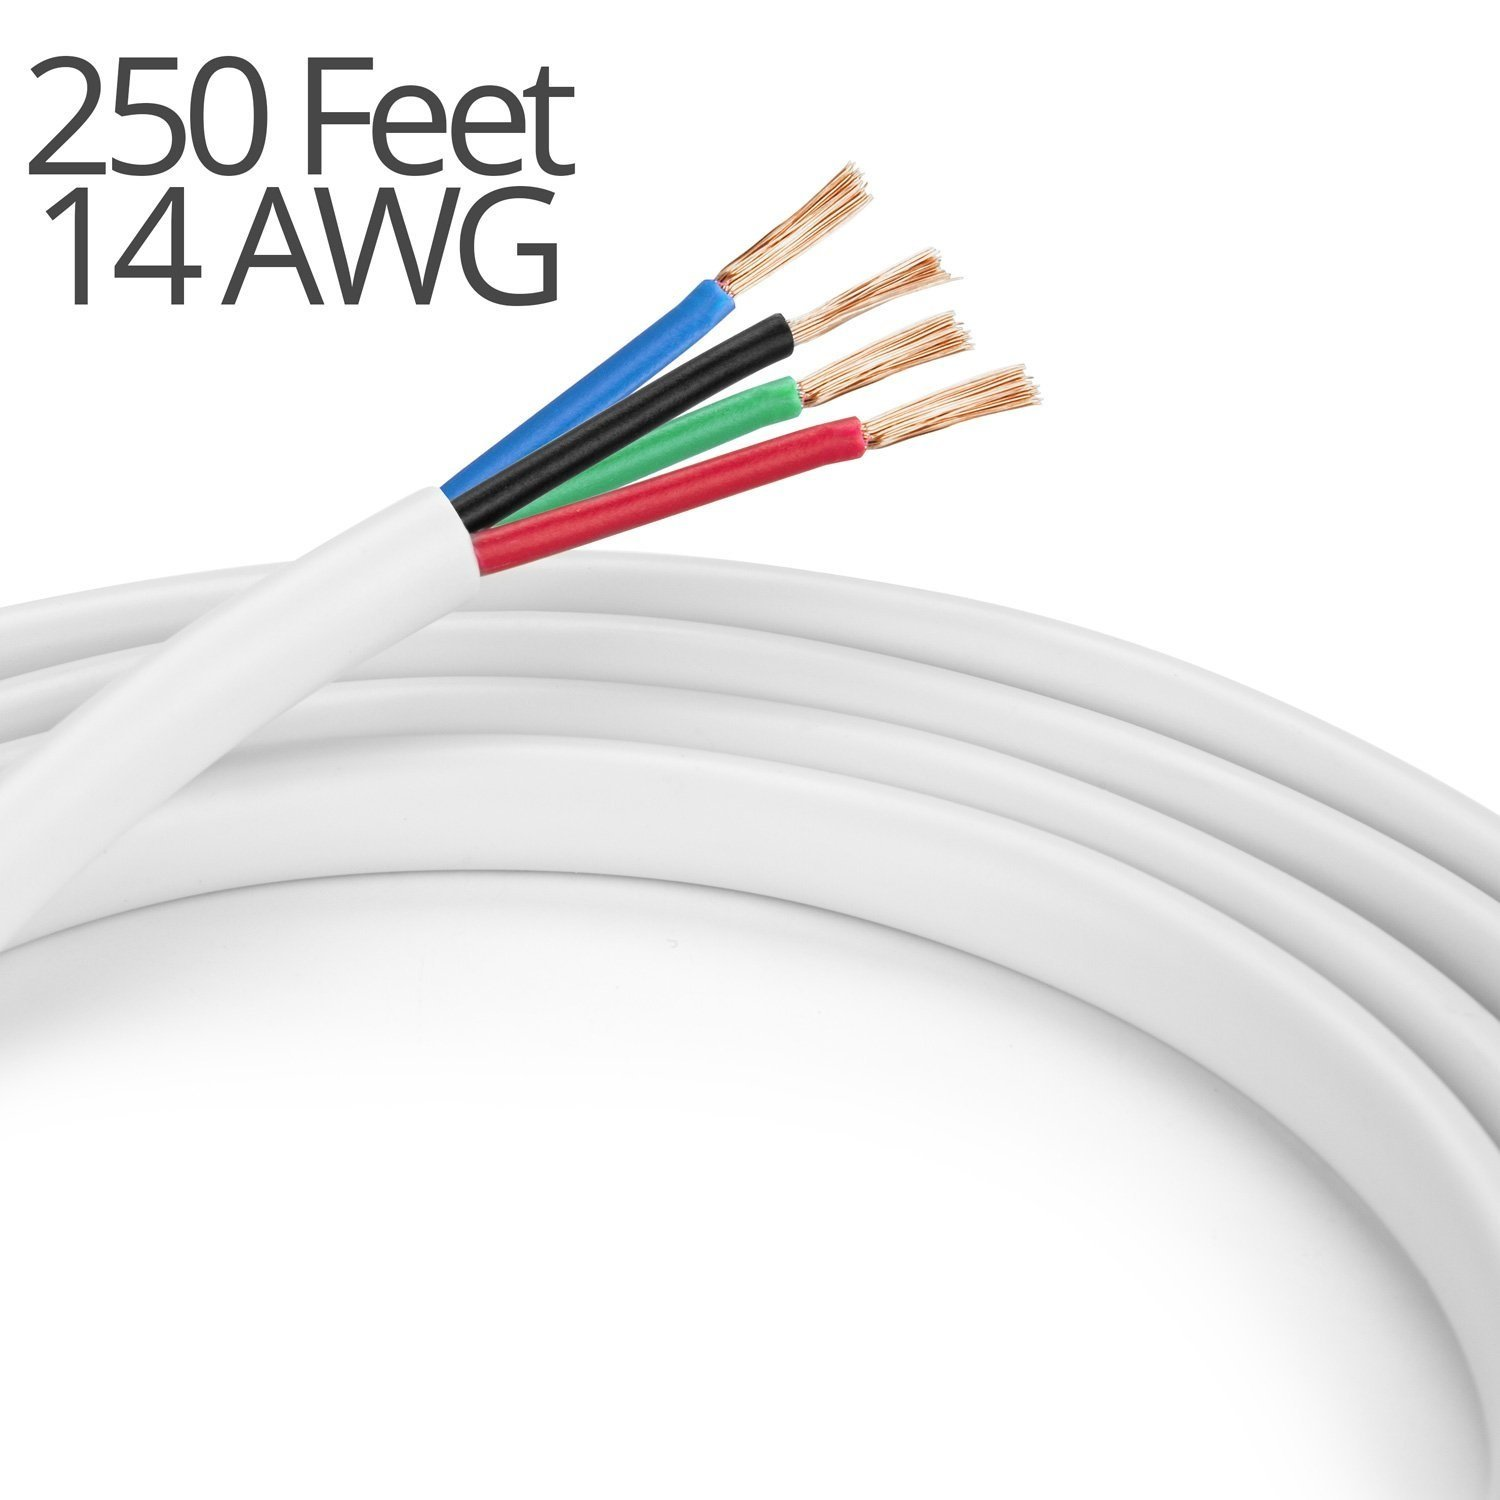 K-tech In Wall Speaker Wire 14AWG UL CL2 Rated 4-Conductor Wire White - Oxygen Free Bare Copper for Home Theater and Car Audio (4-Conductor, 250 Feet) by K-tech